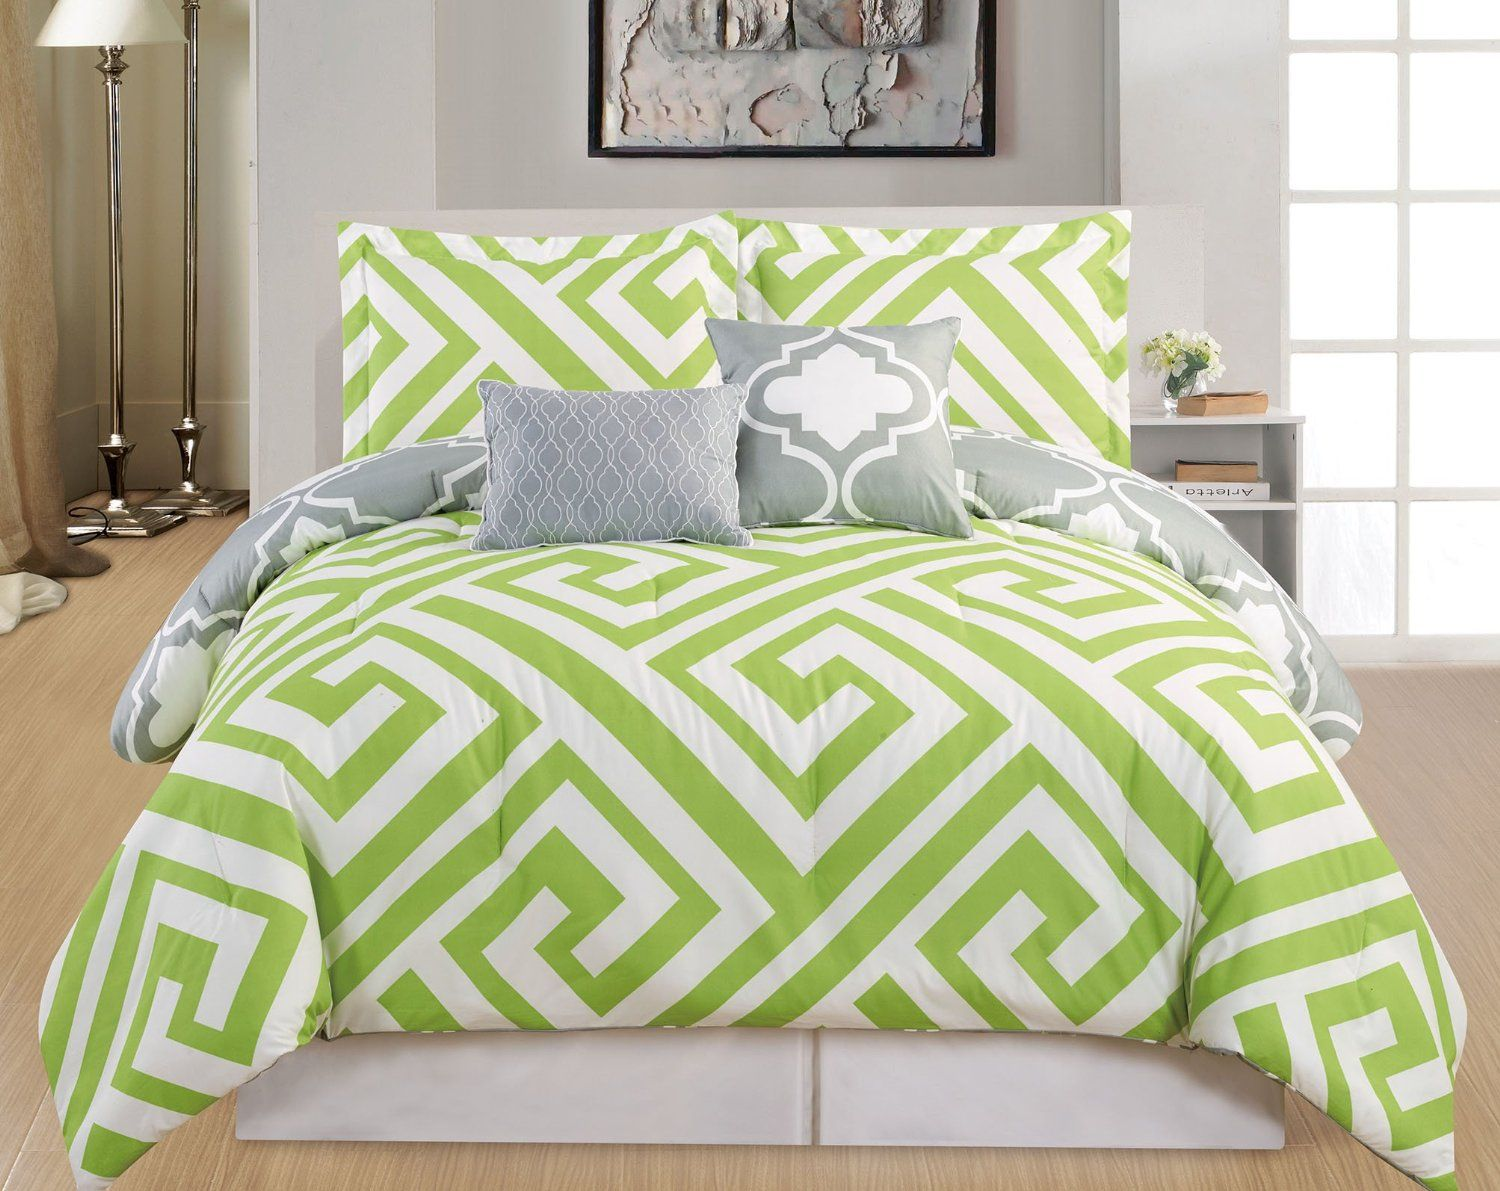 Total Fab: Lime Green and Grey Bedding Sets | Bed linens ...